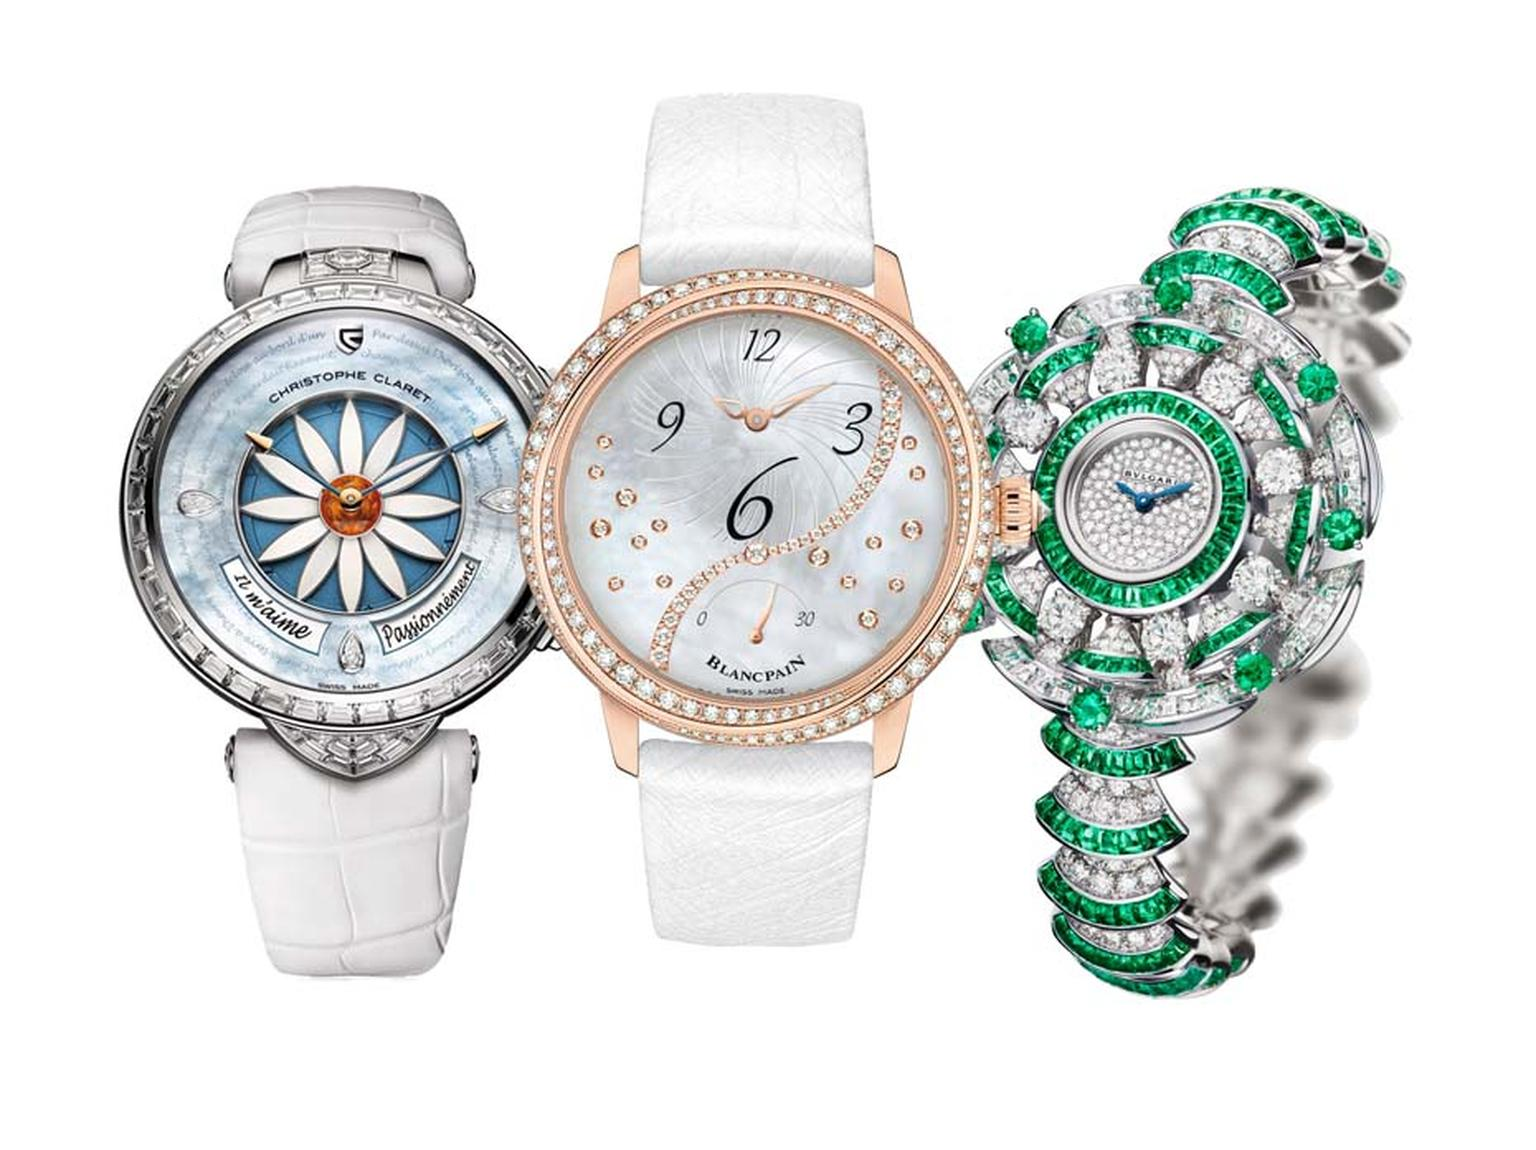 GPHG winners for women's watches included Christophe Claret's whimsical Margot watch with its game of romantic roulette took home the Ladies' High Mechanical prize, meanwhile Blancpain's off-centred hour watch won the Ladies' Watch prize and Bulgari's opu